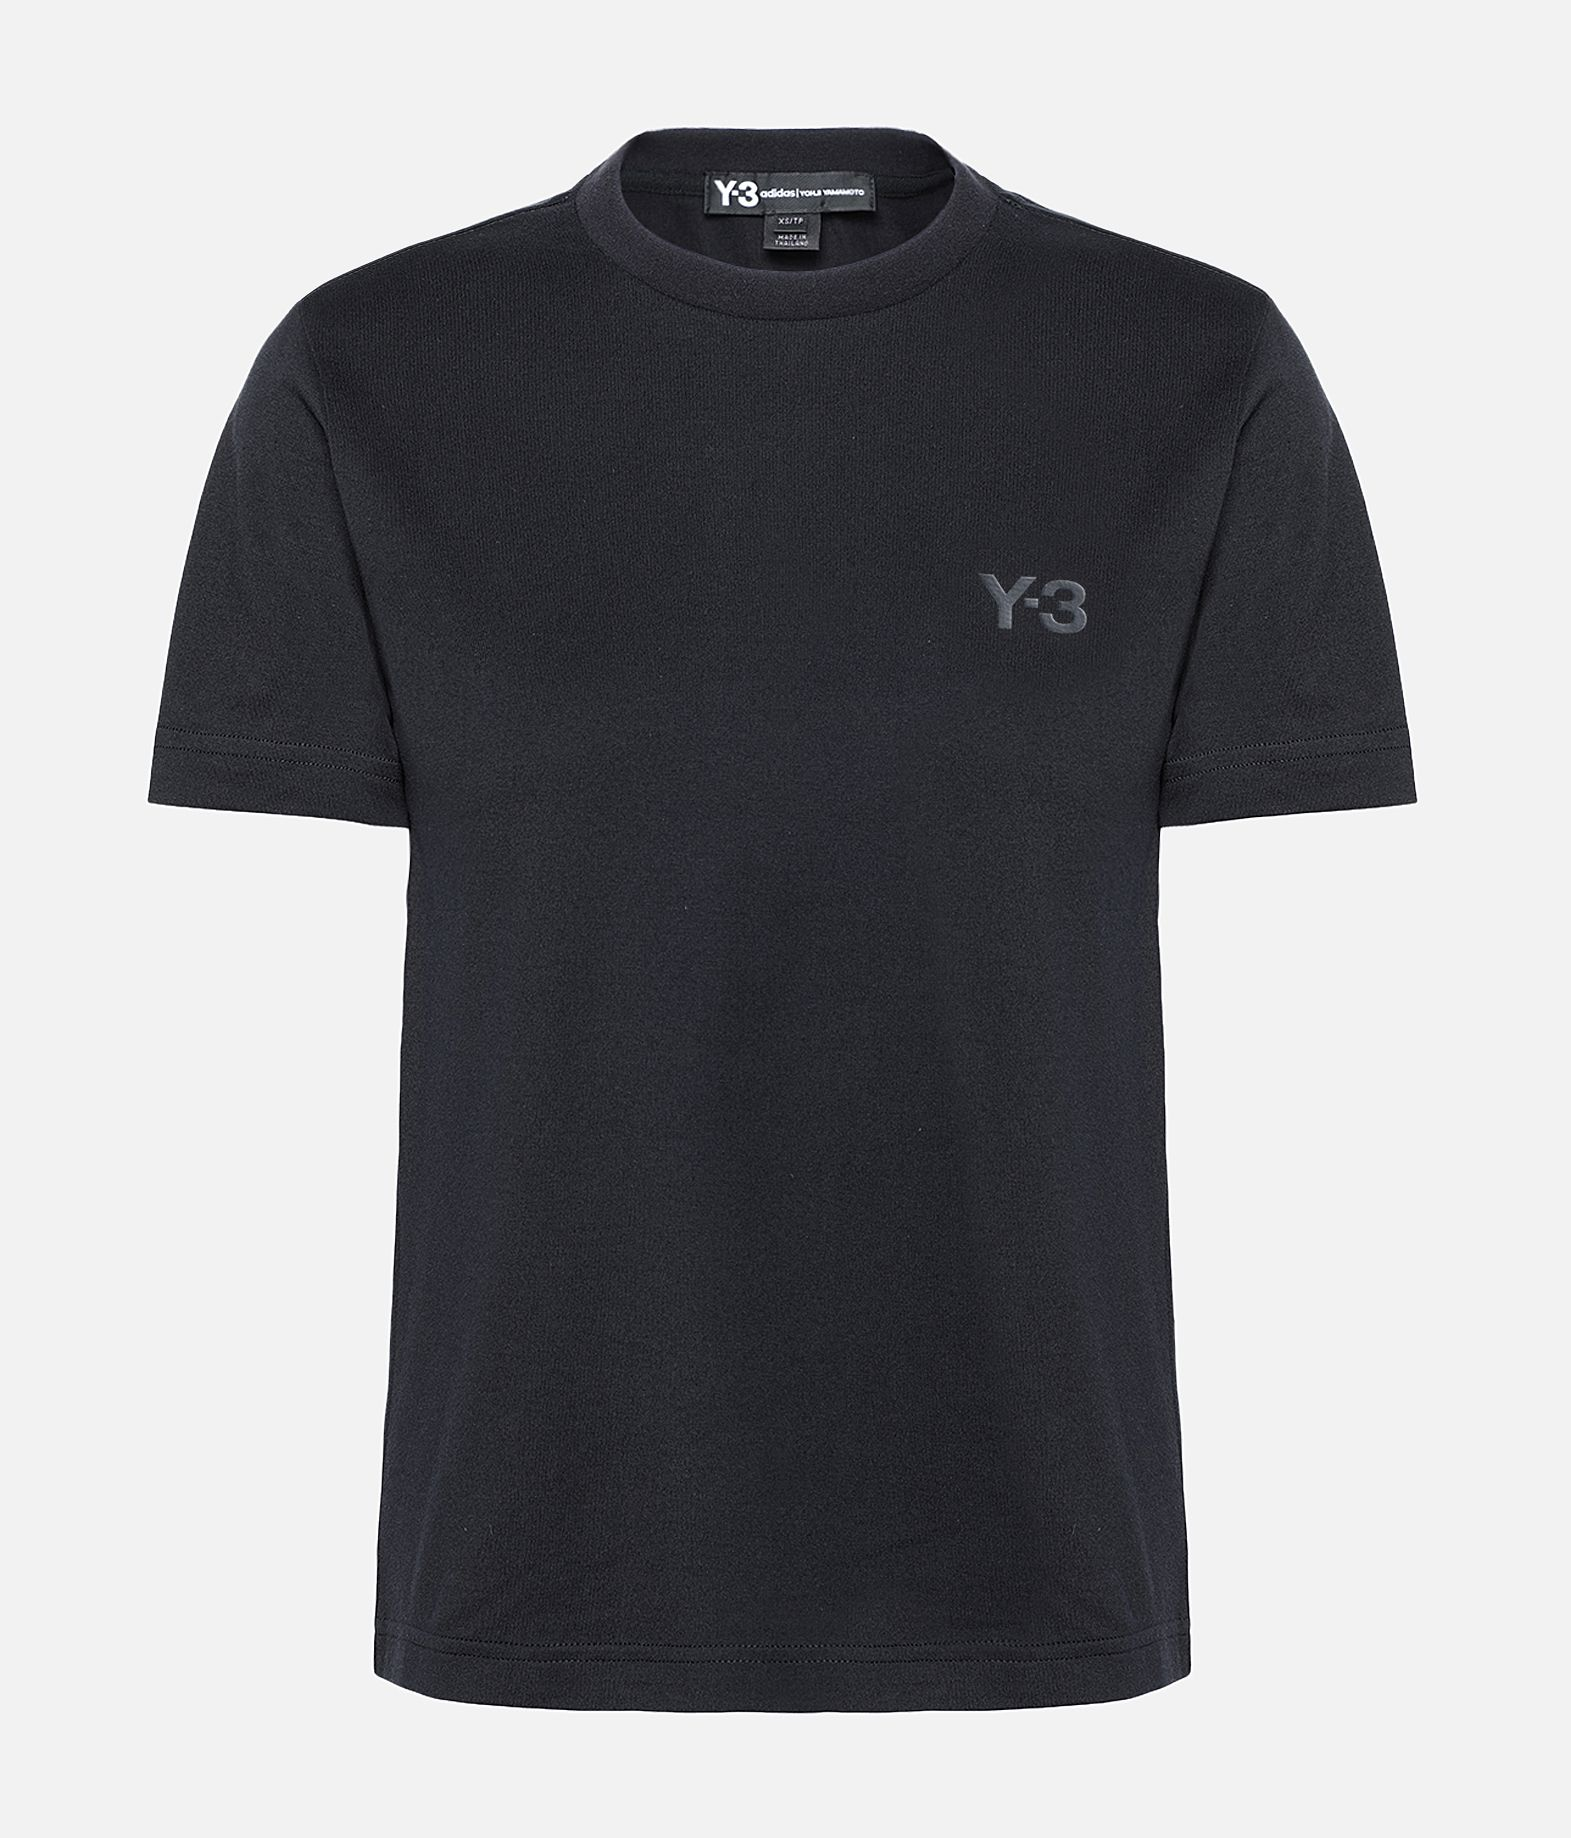 Y-3 Y-3 Short Sleeve Tee  Short sleeve t-shirt Woman f